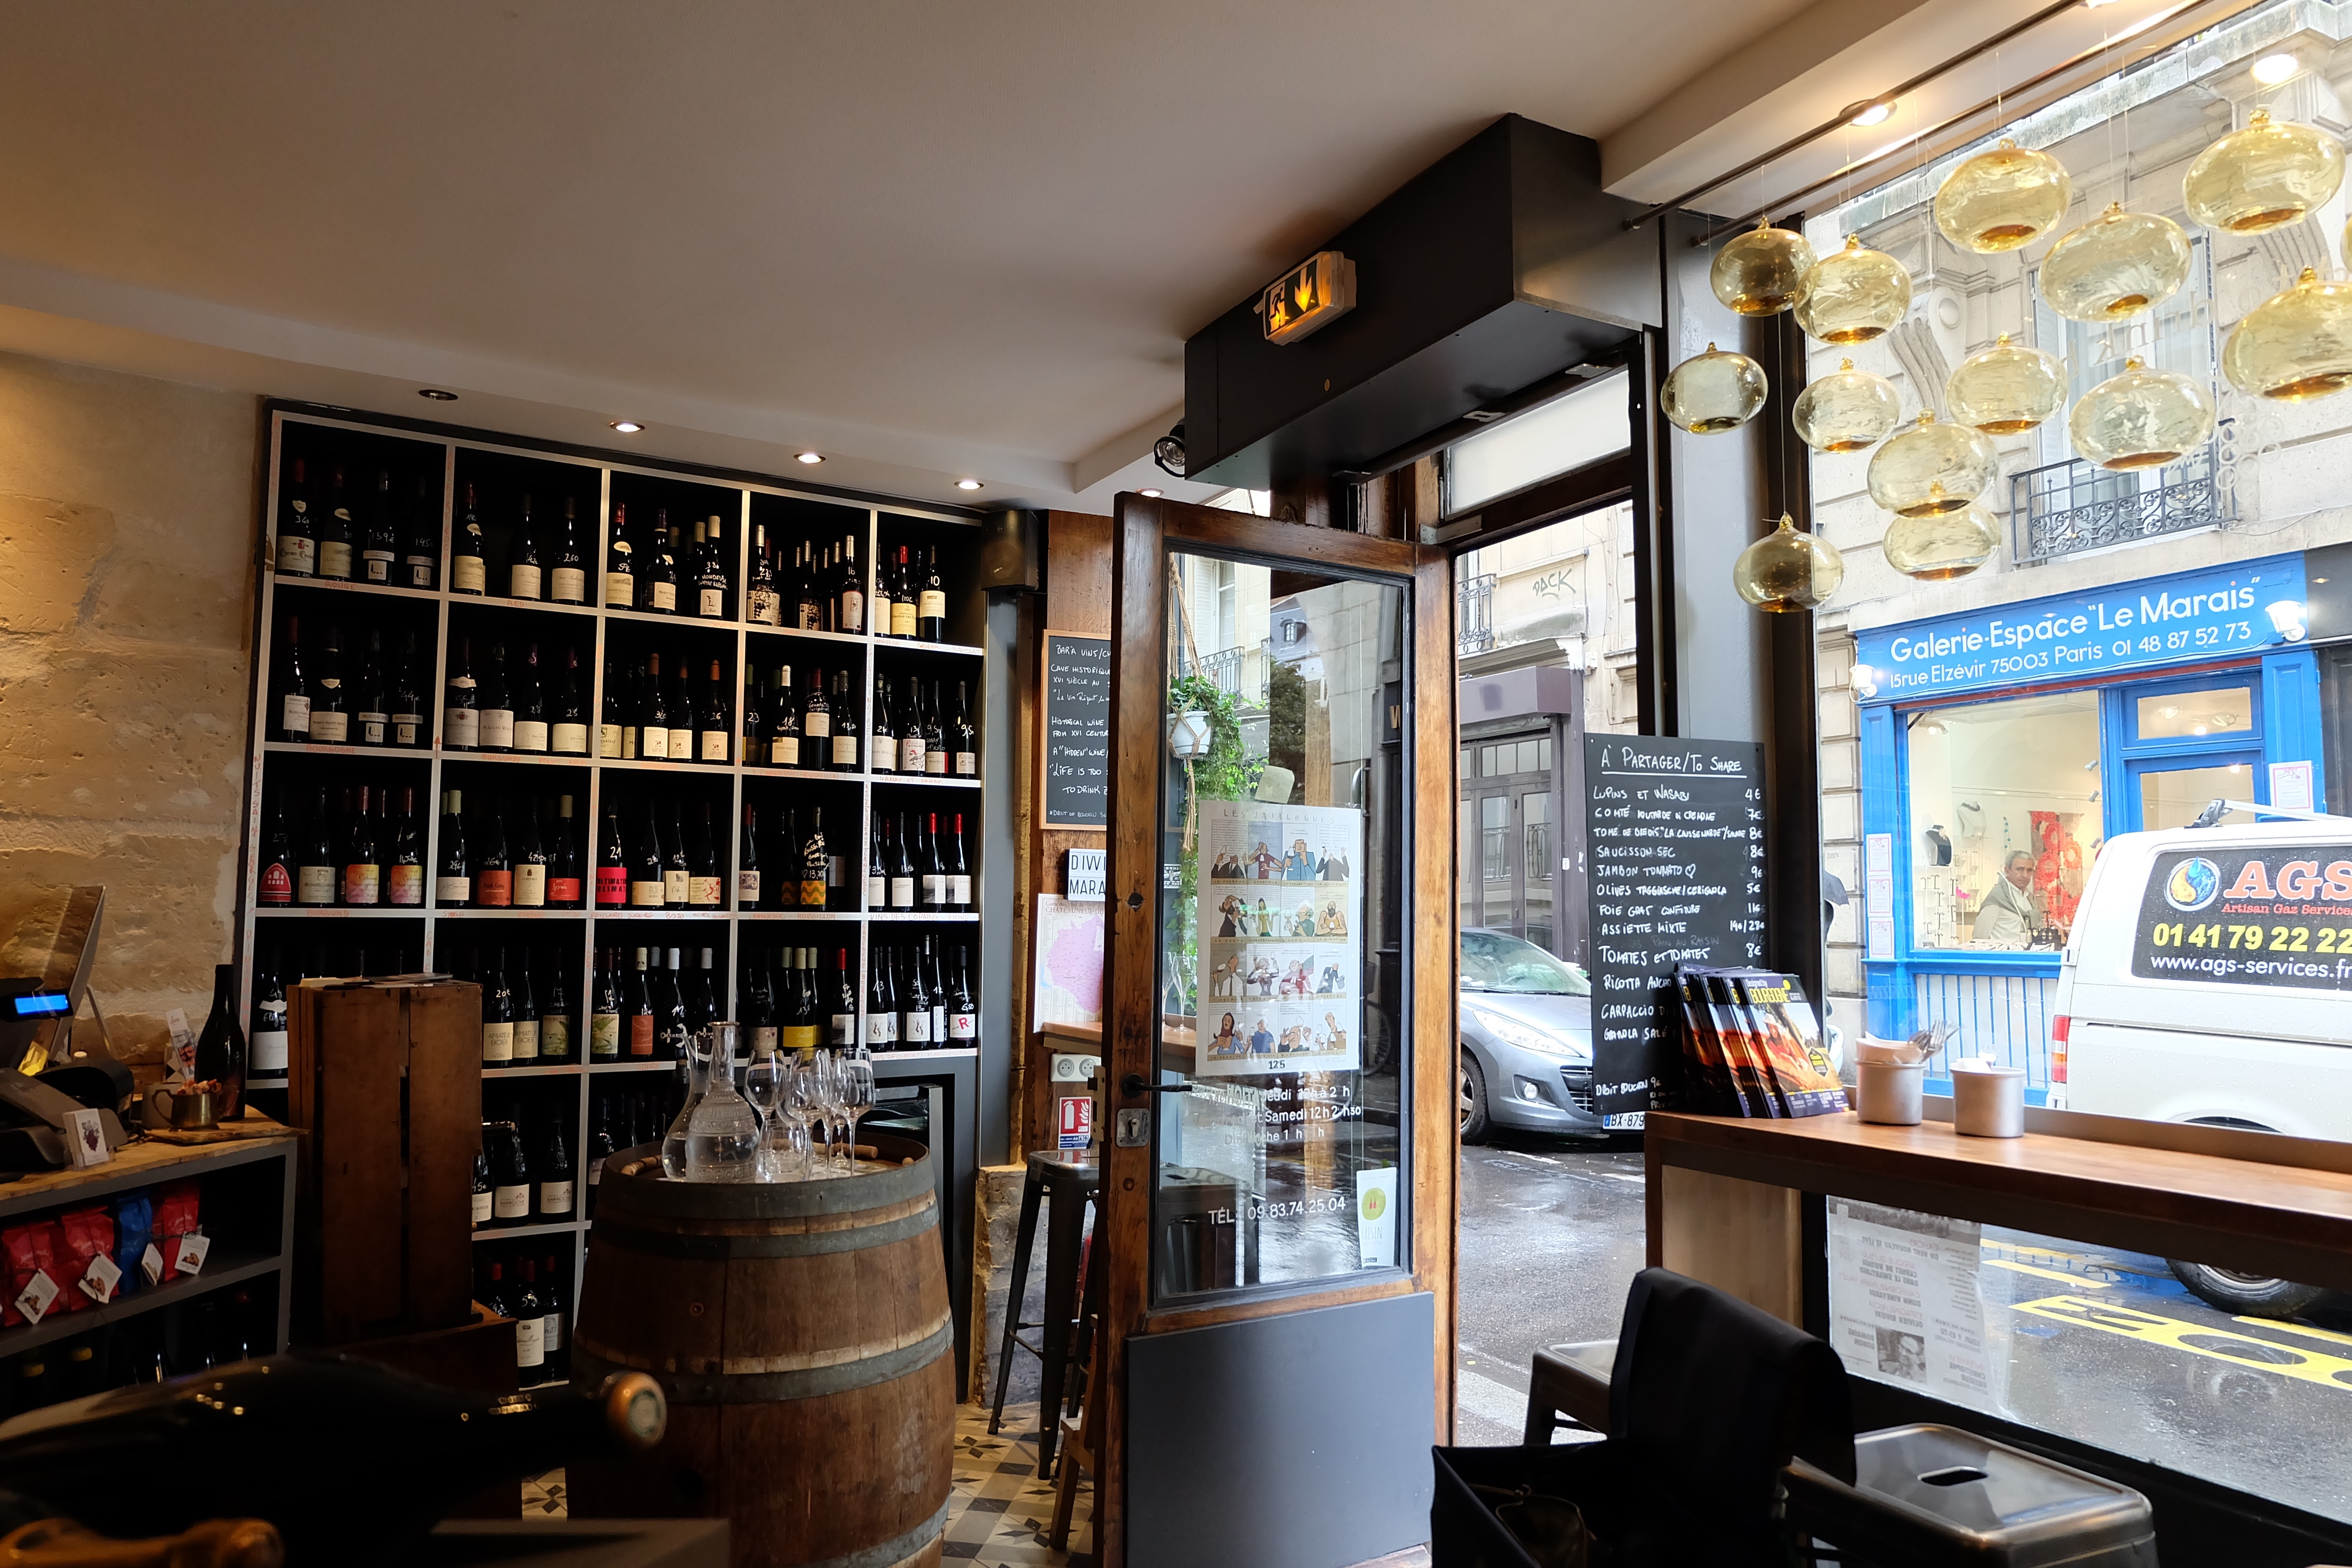 Divvino wine shop in Paris | parisbymouth.com